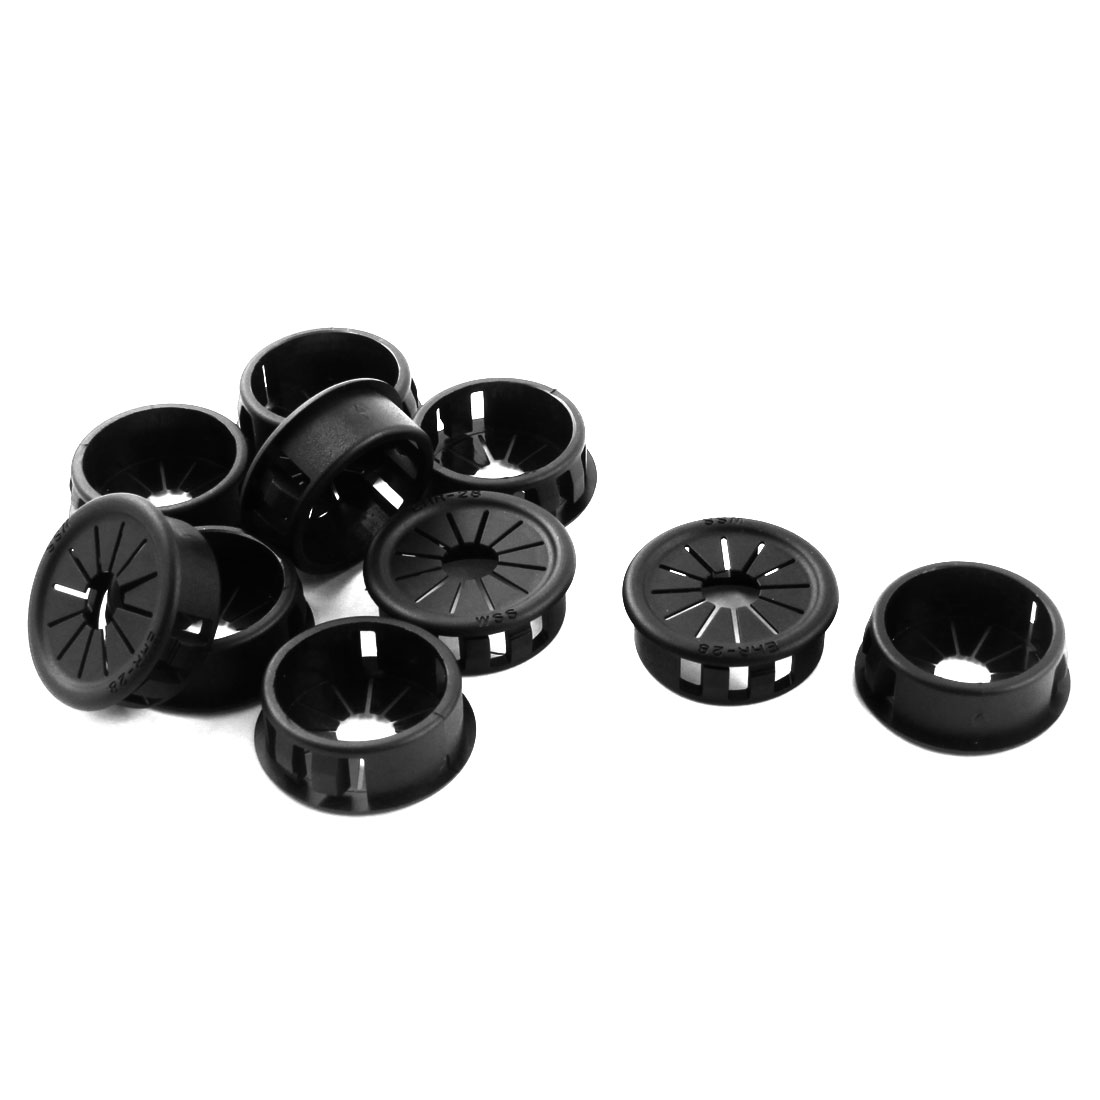 Unique Bargains 10Pcs 27.5mm Black Cable Pipe Snap in Lock Bushing Protector Grommet Harness